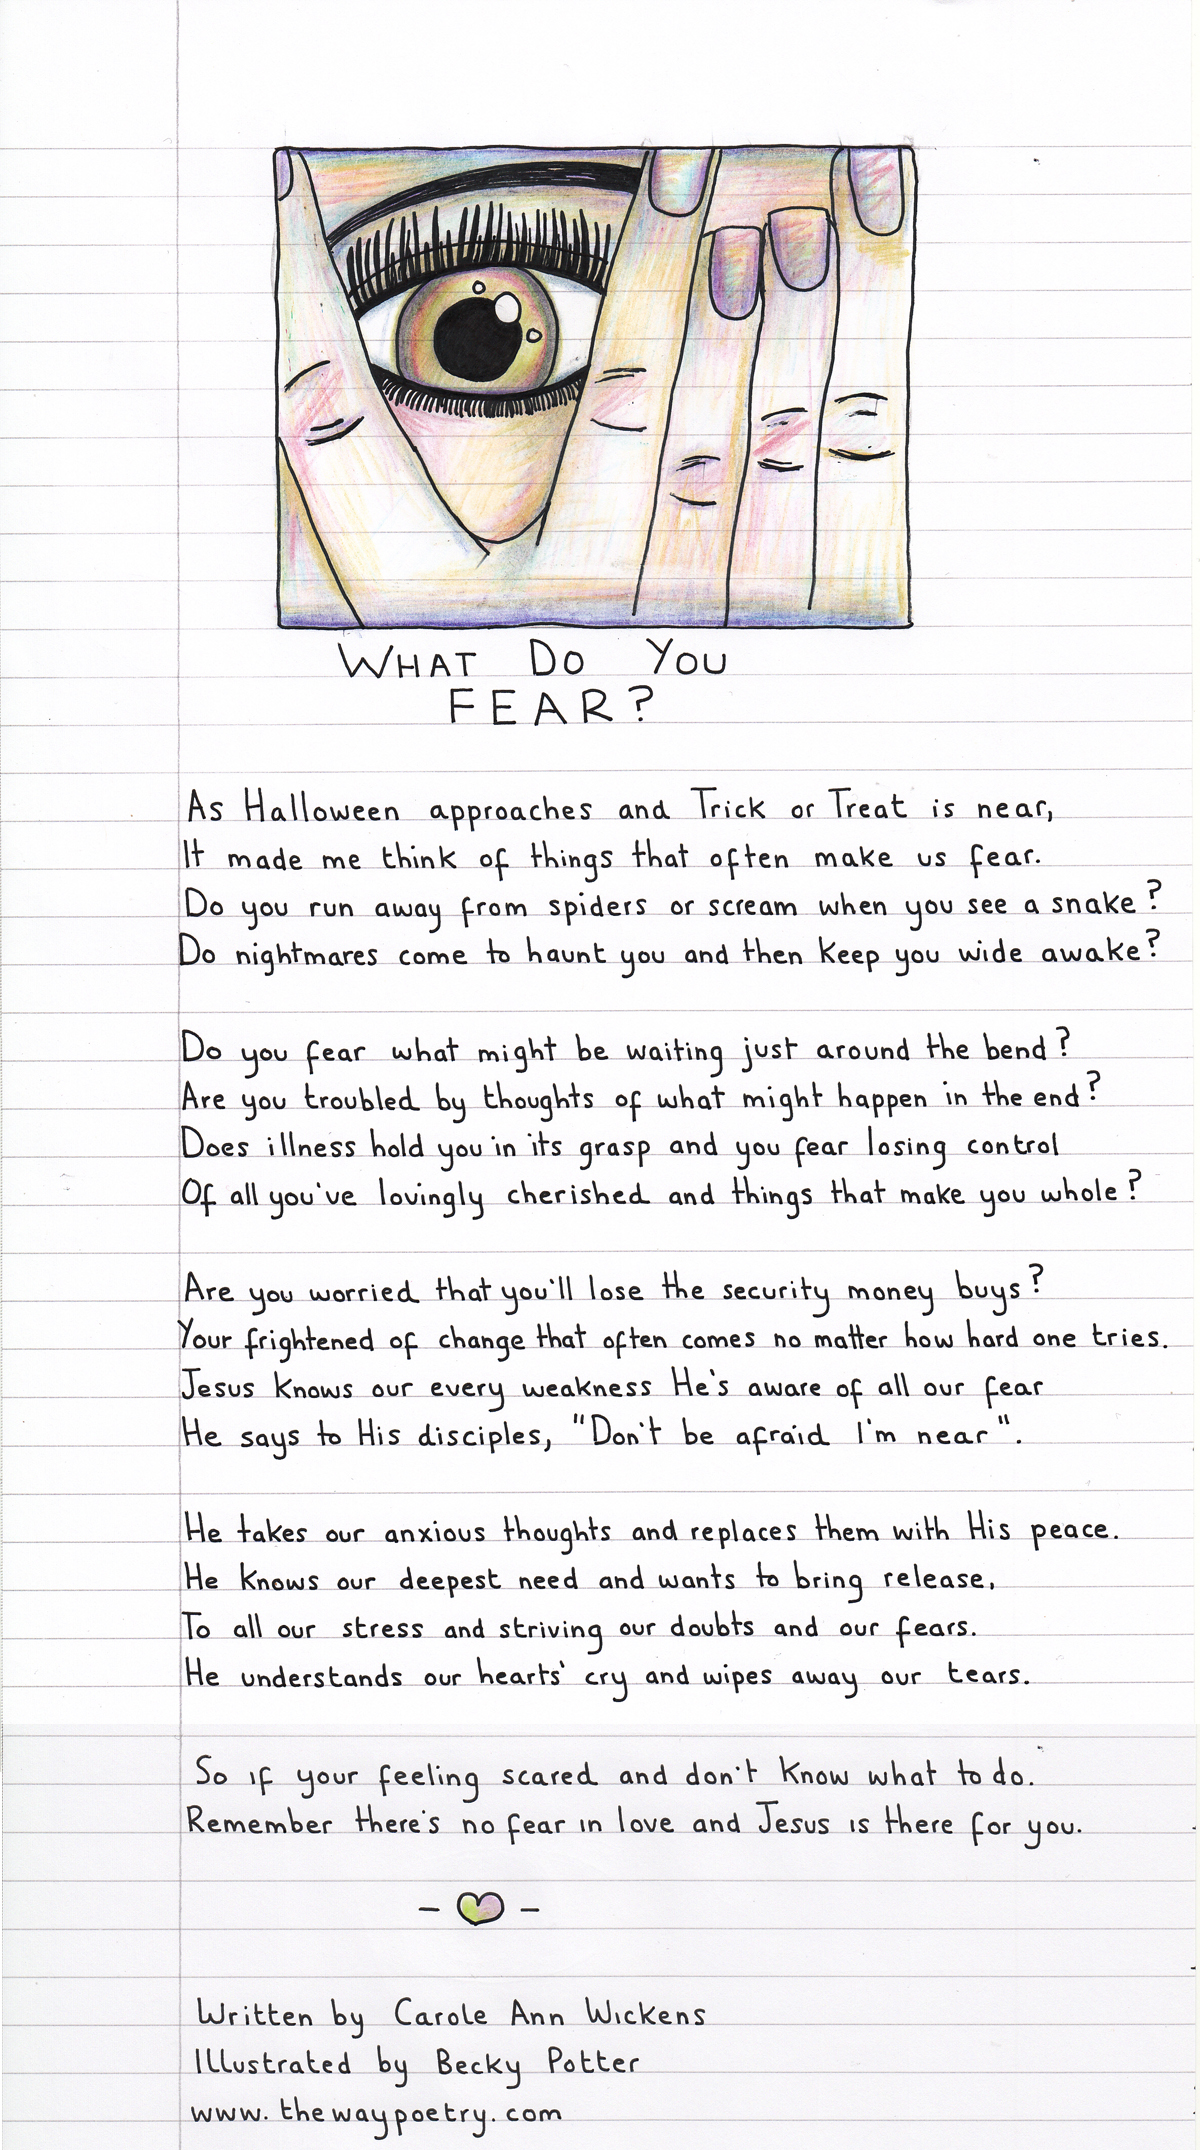 What Do You Fear by Carole AnnWickens